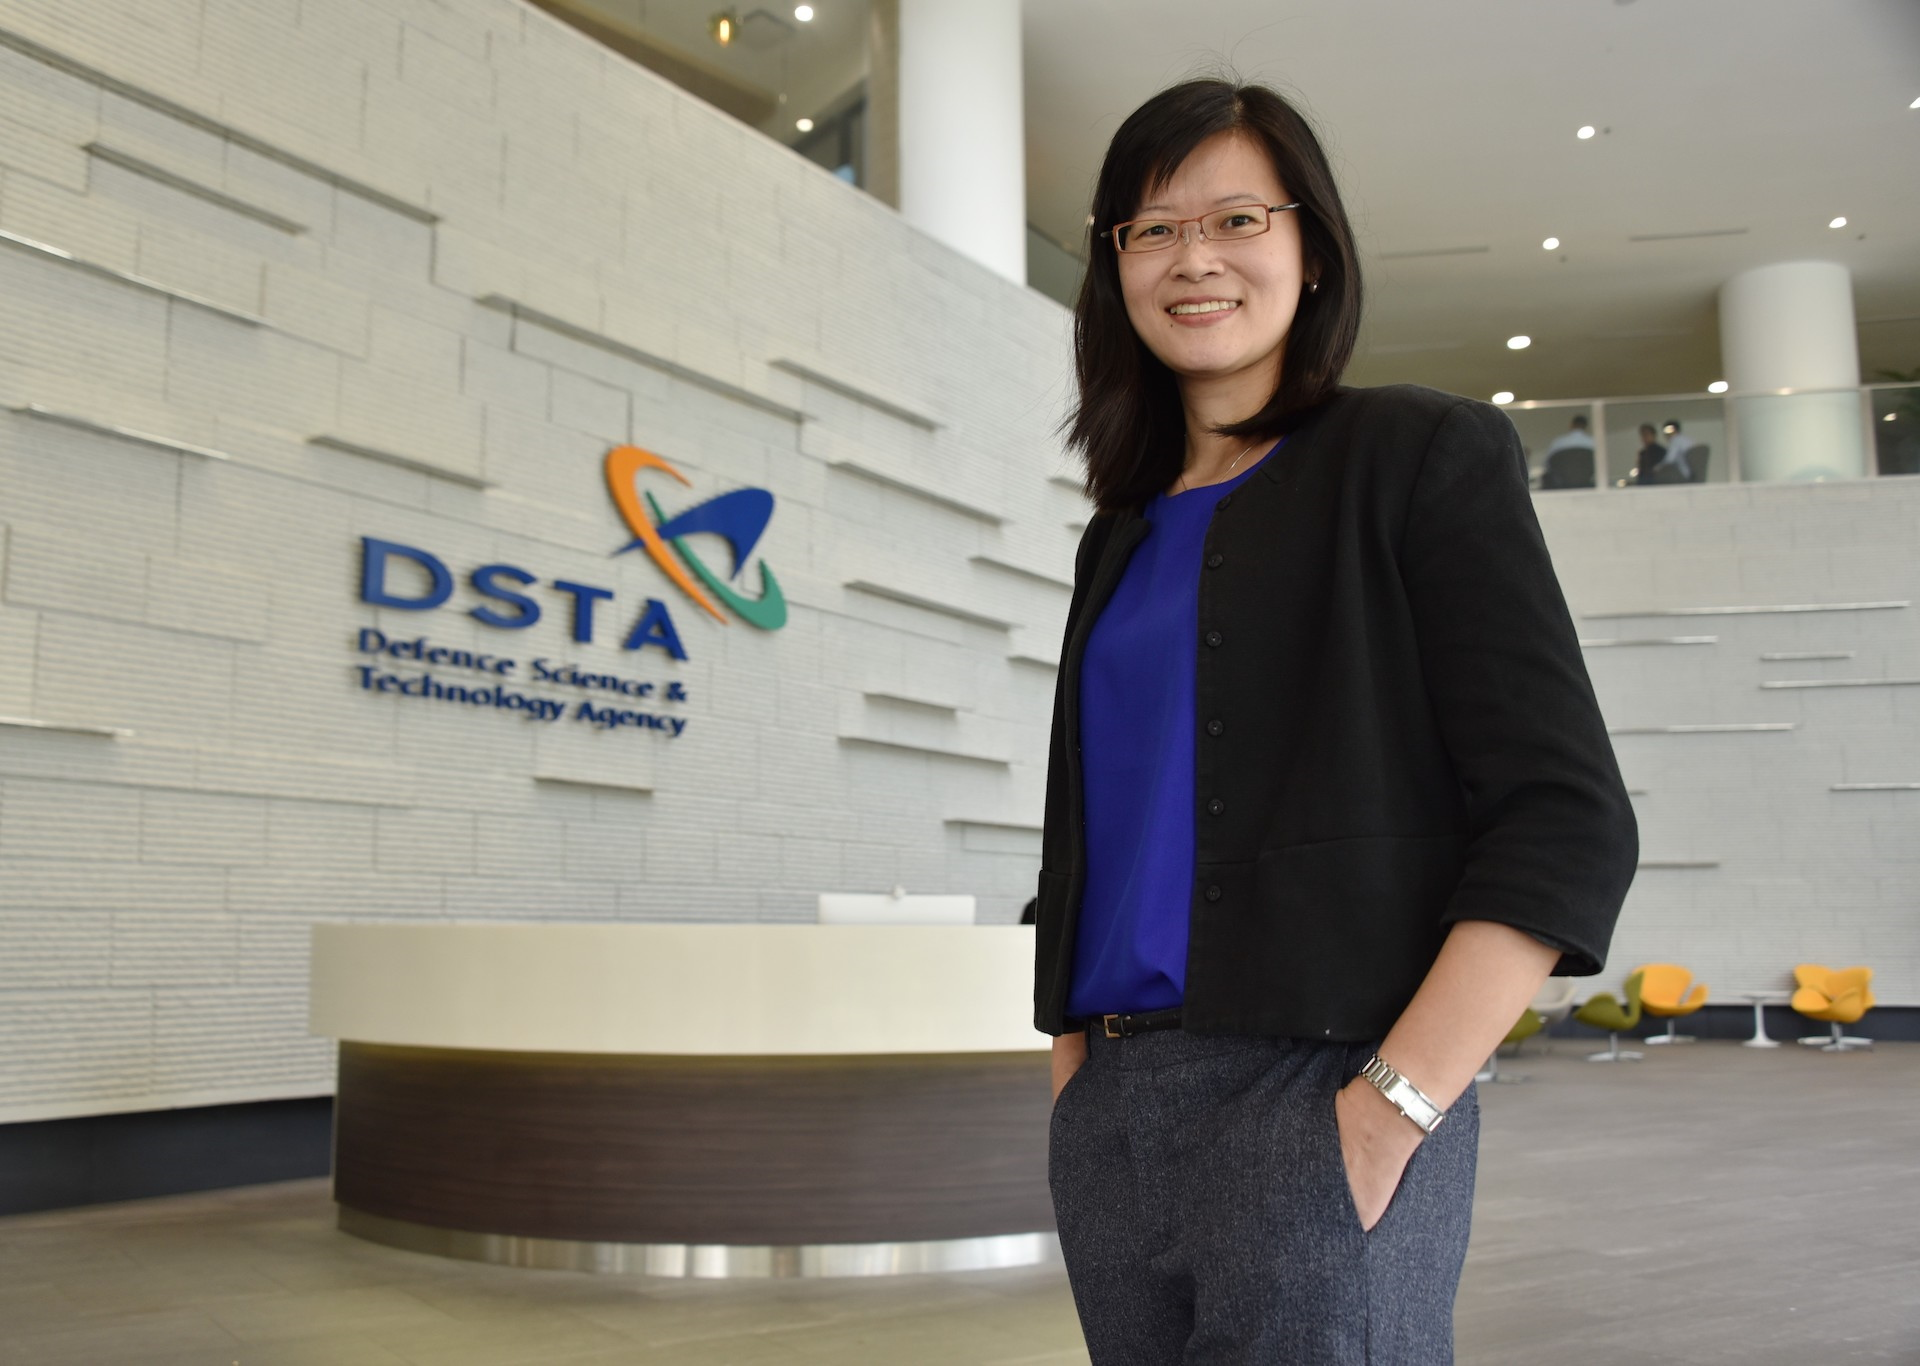 She's a leader in Spore's defence tech community